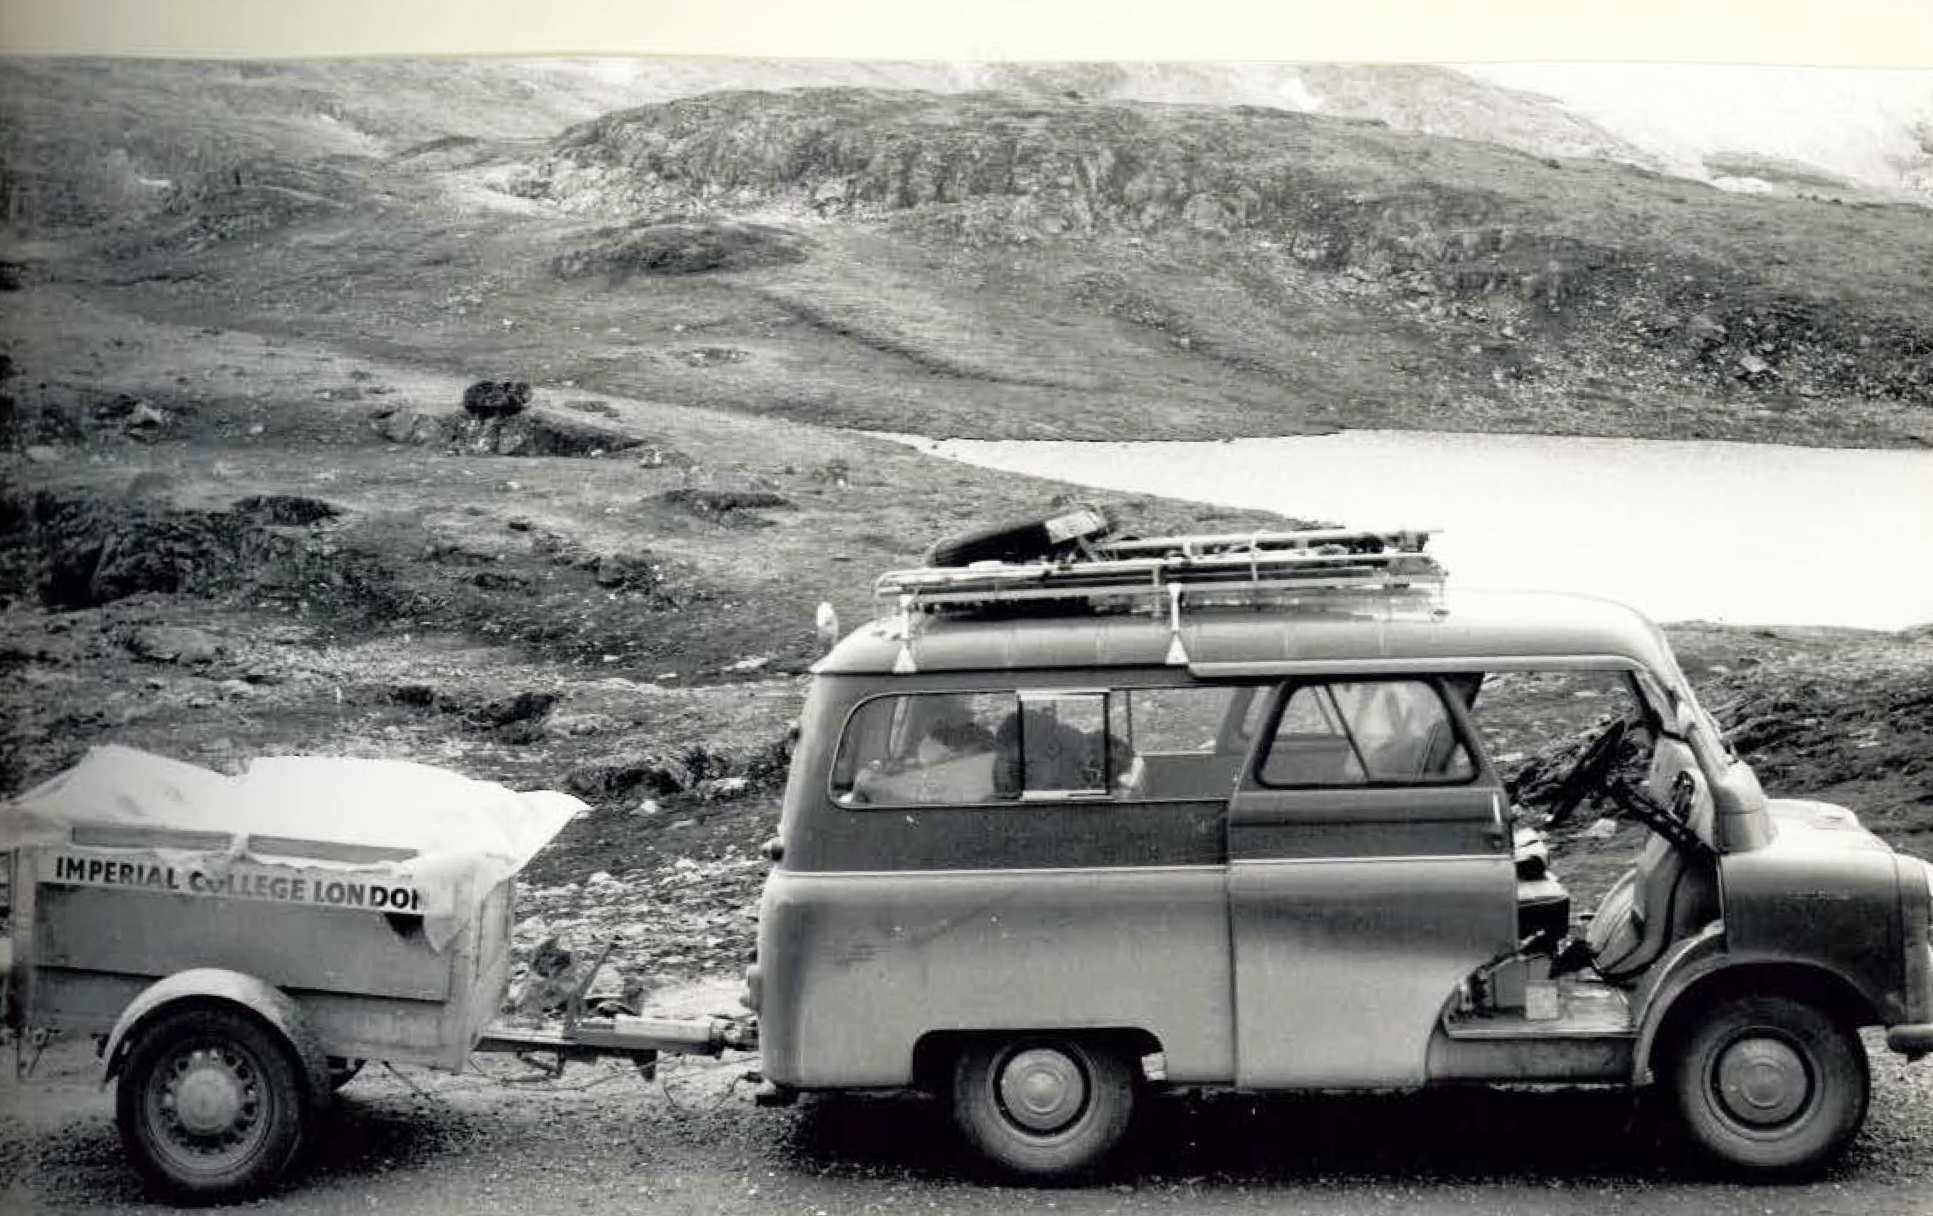 Expedition van and trailer